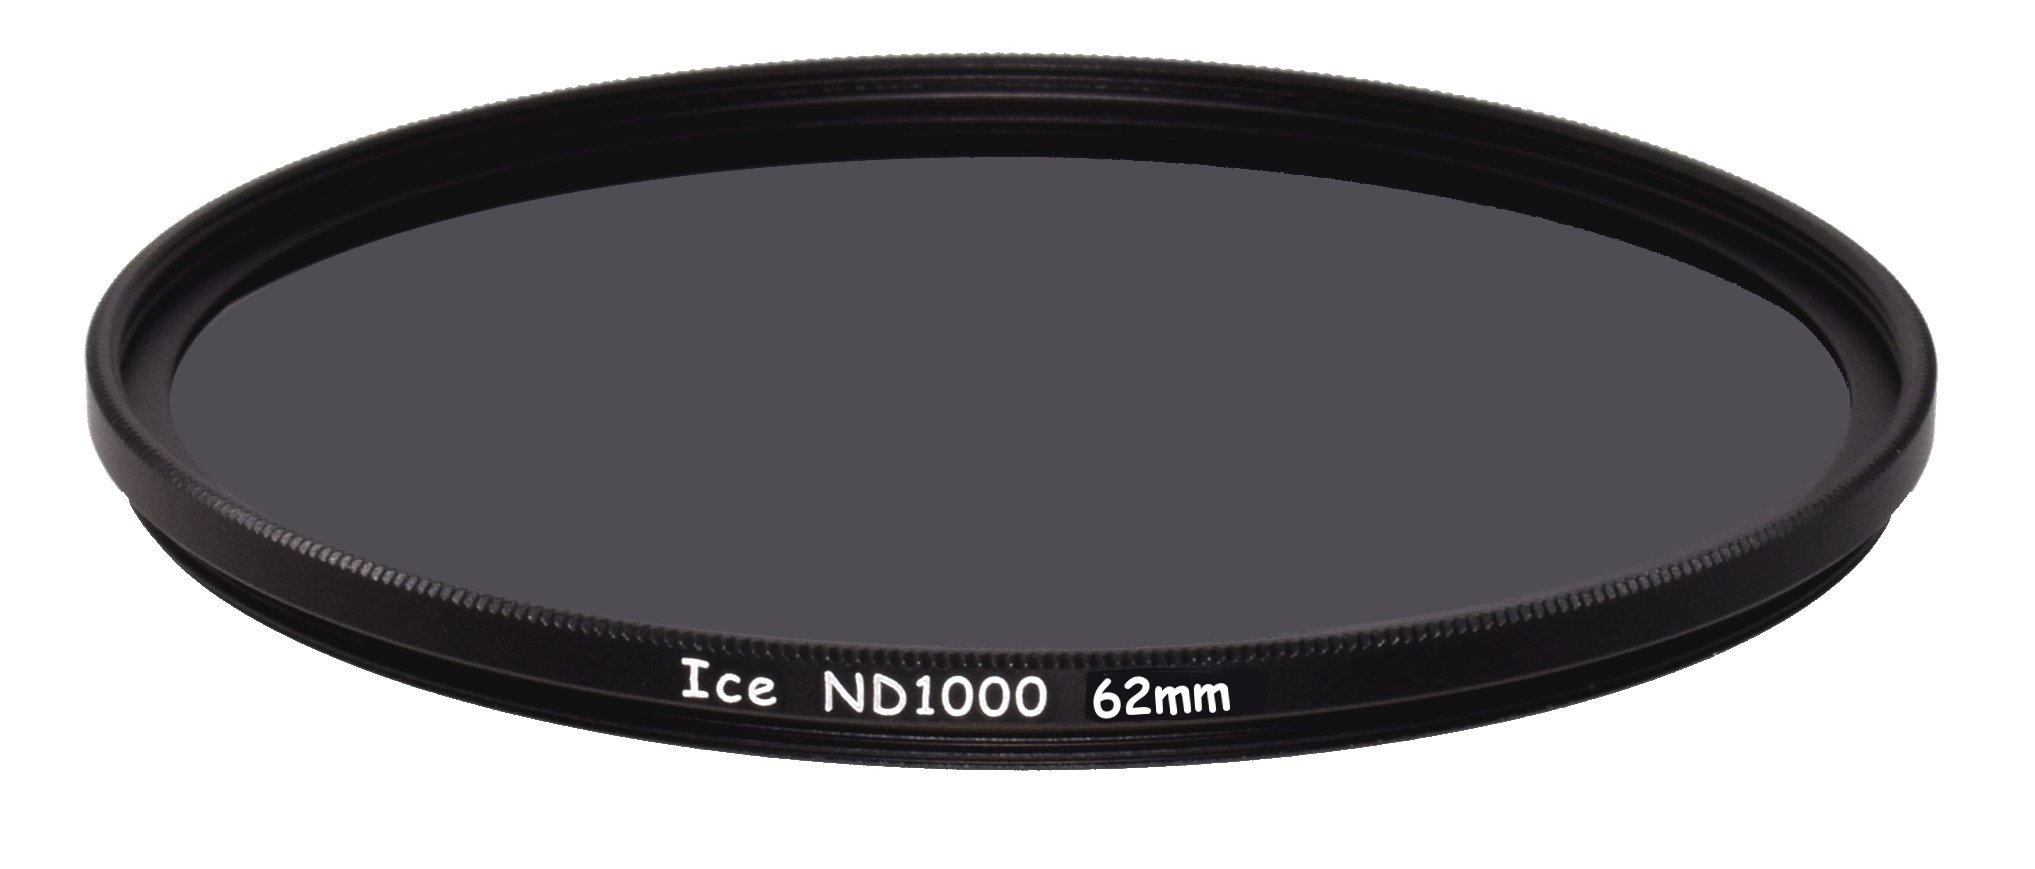 Ice 62mm ND1000 Filter Neutral Density ND 1000 62 10 Stop Optical Glass